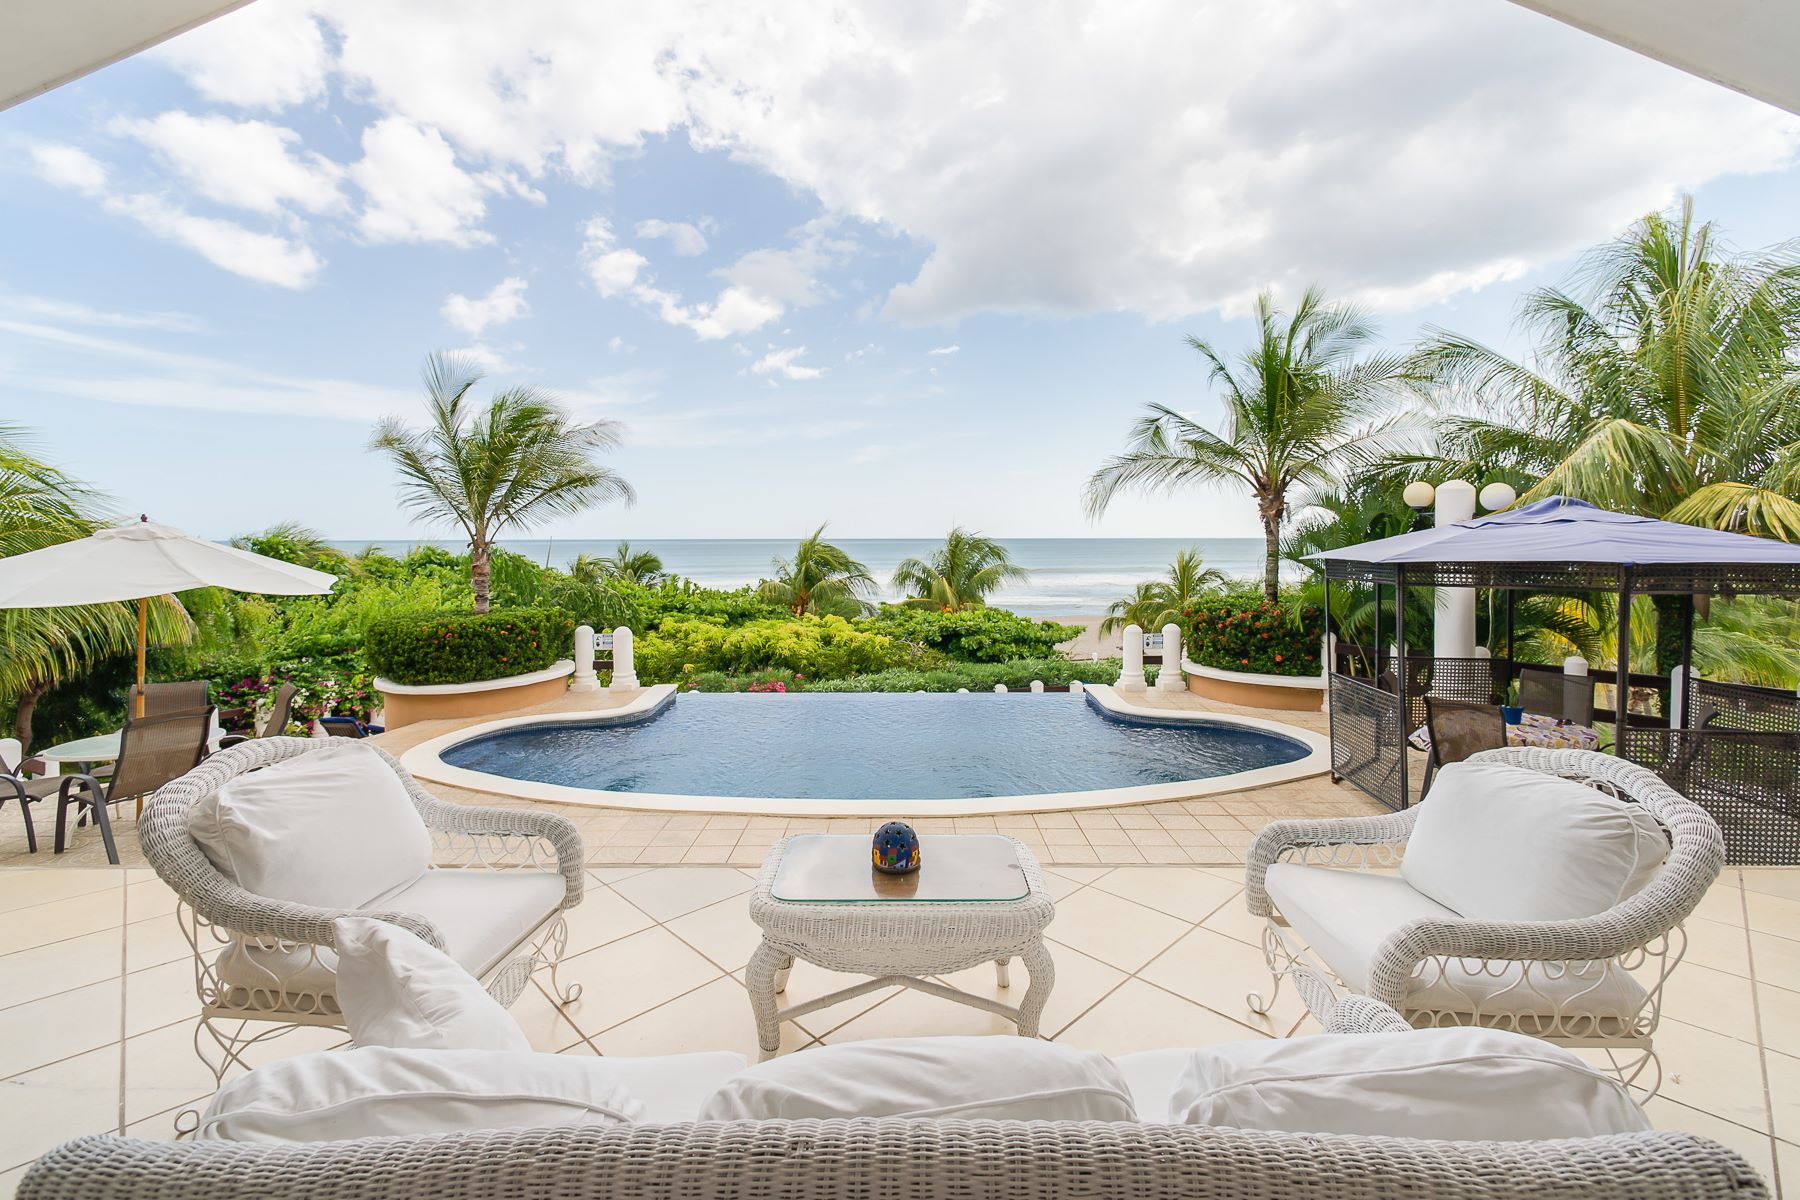 Частный односемейный дом для того Продажа на Villa ColEli a Luxurious Beauty on the Sands of Playa Pochomil Other Managua, Managua, Nicaragua